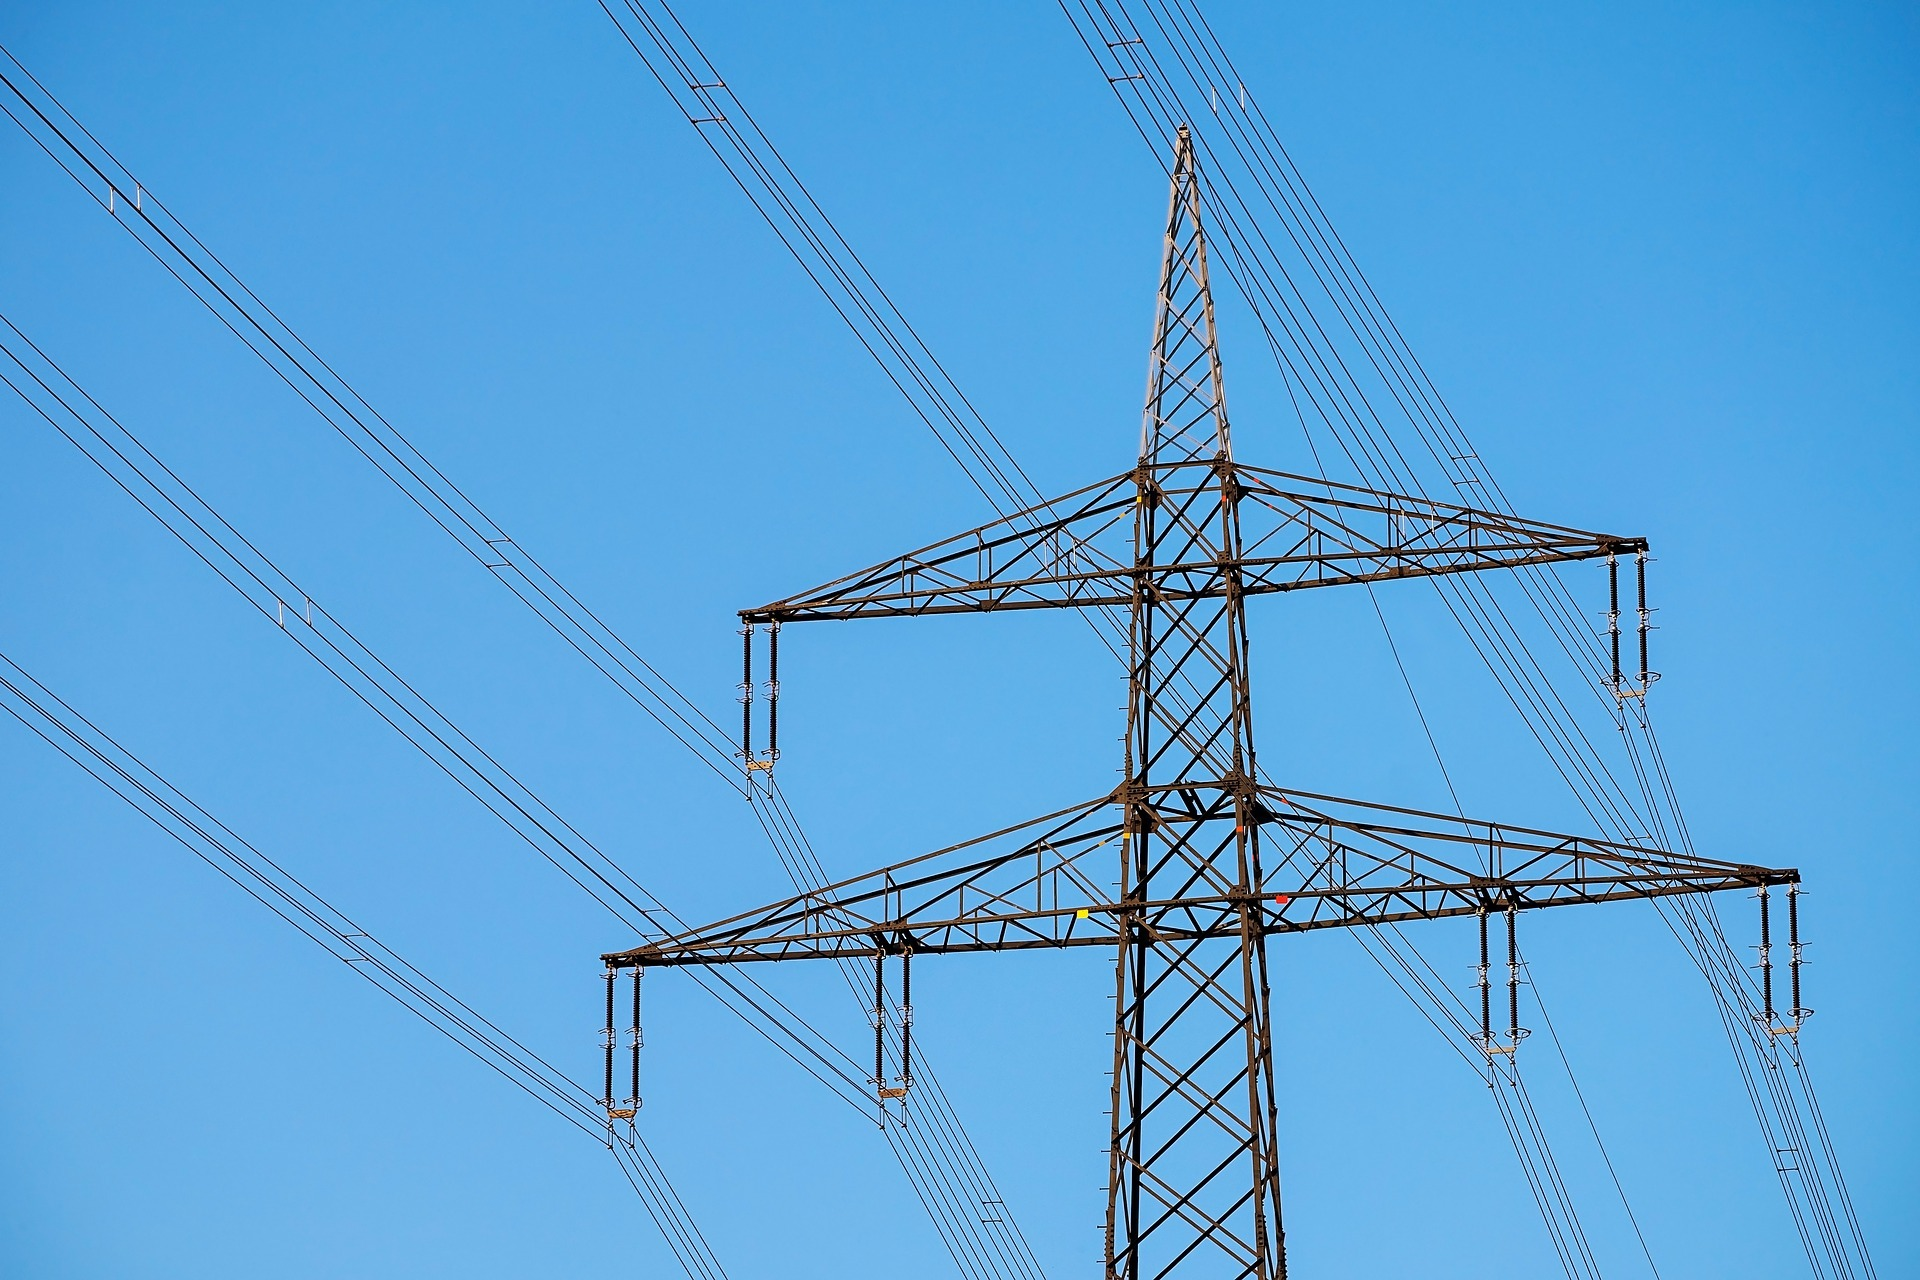 Power supplies have been interrupted in the G83 and G84 postcode areas